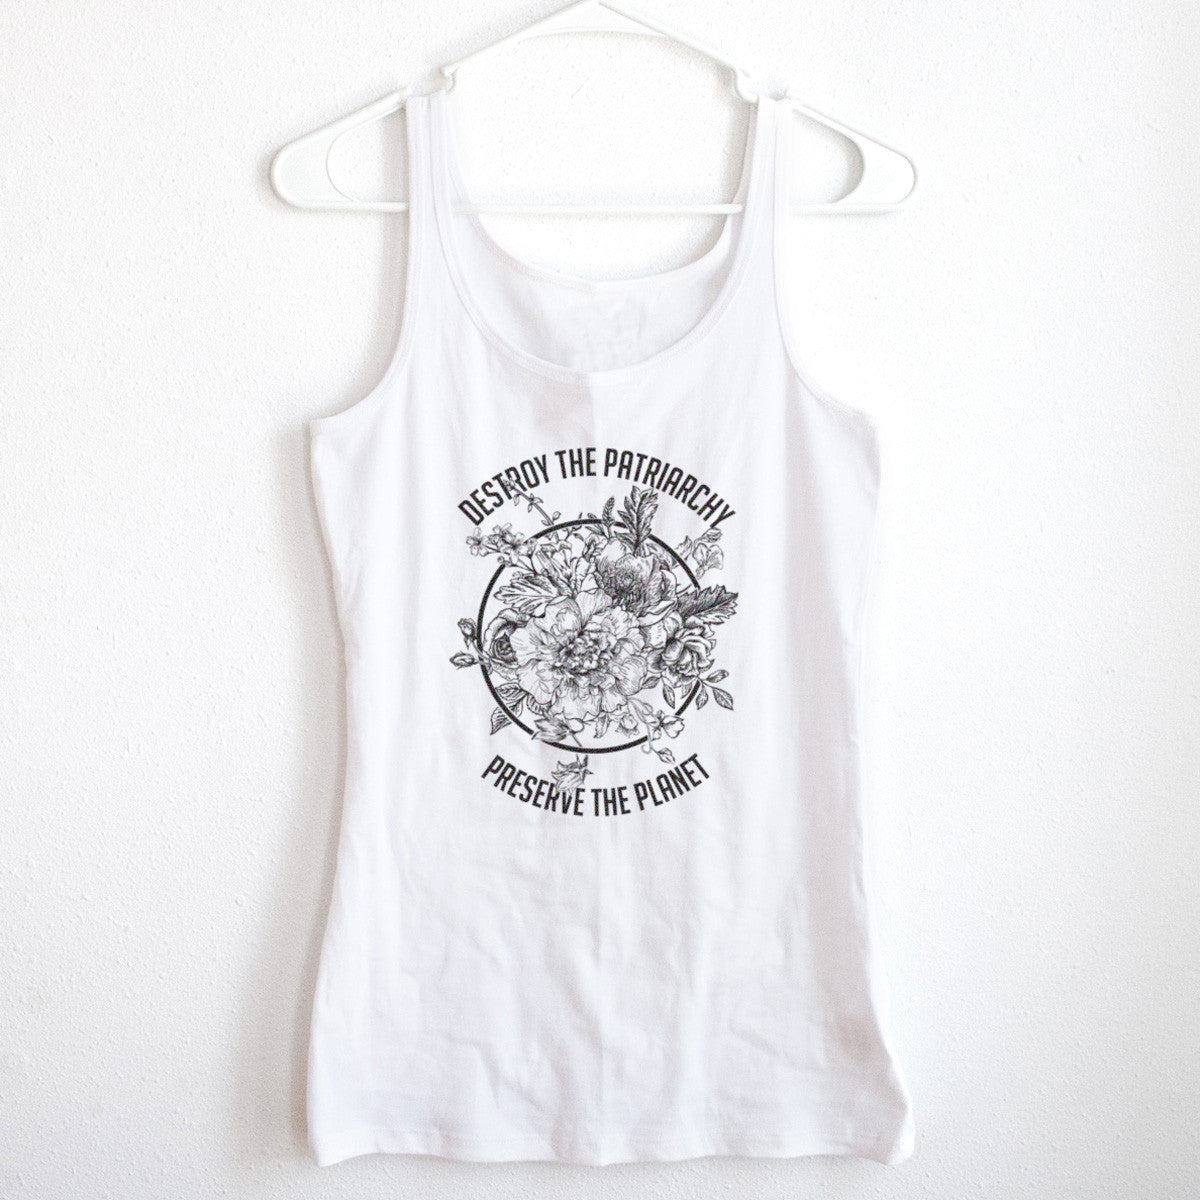 Destroy The Patriarchy Preserve the Planet Black and White Ladies' Tank - pipercleo.com